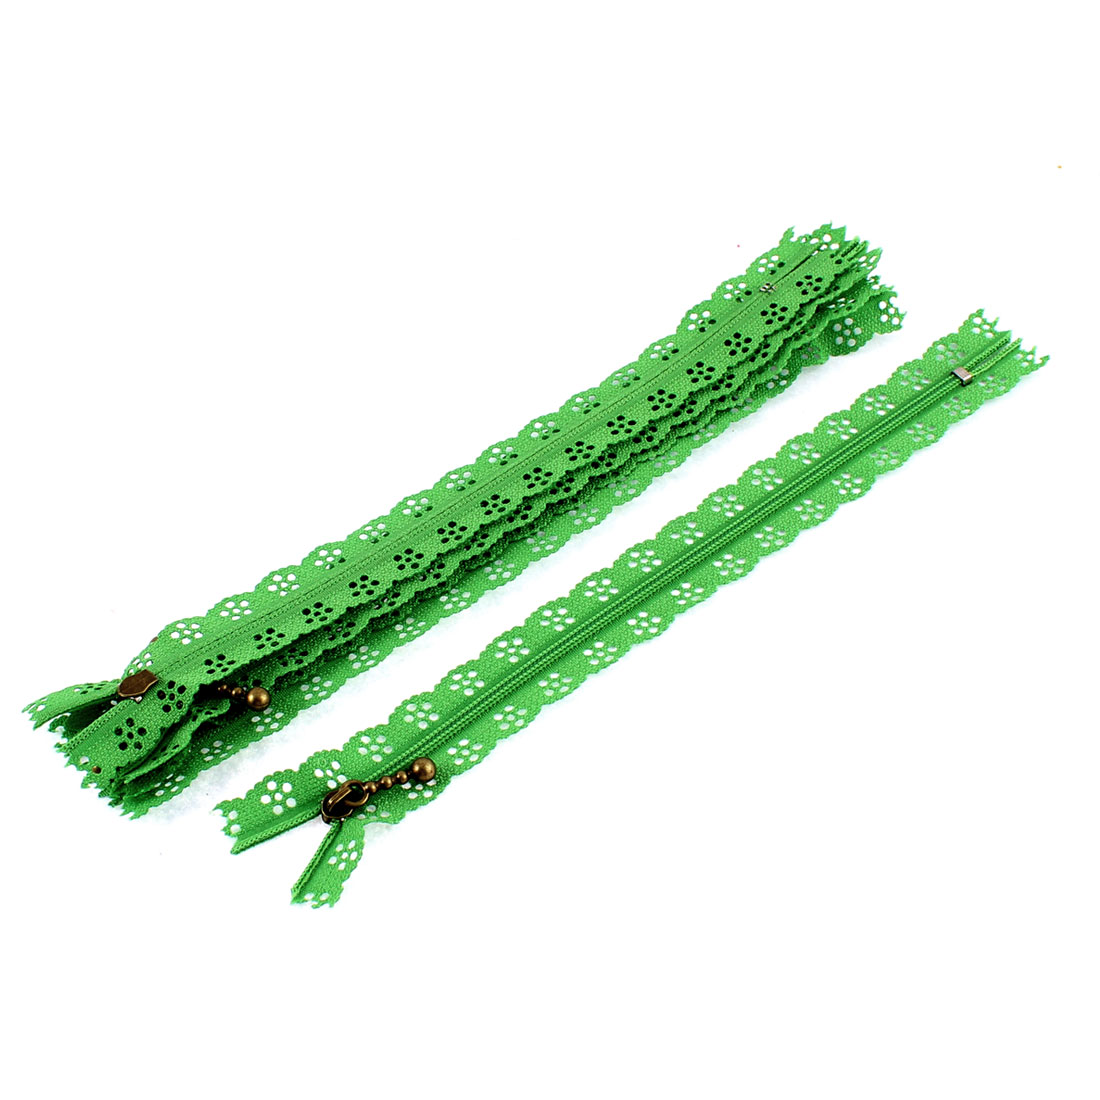 Nylon Coil Zippers Lace Edge Tailor Bag Clothing DIY Craft Green 20cm 5 Pcs